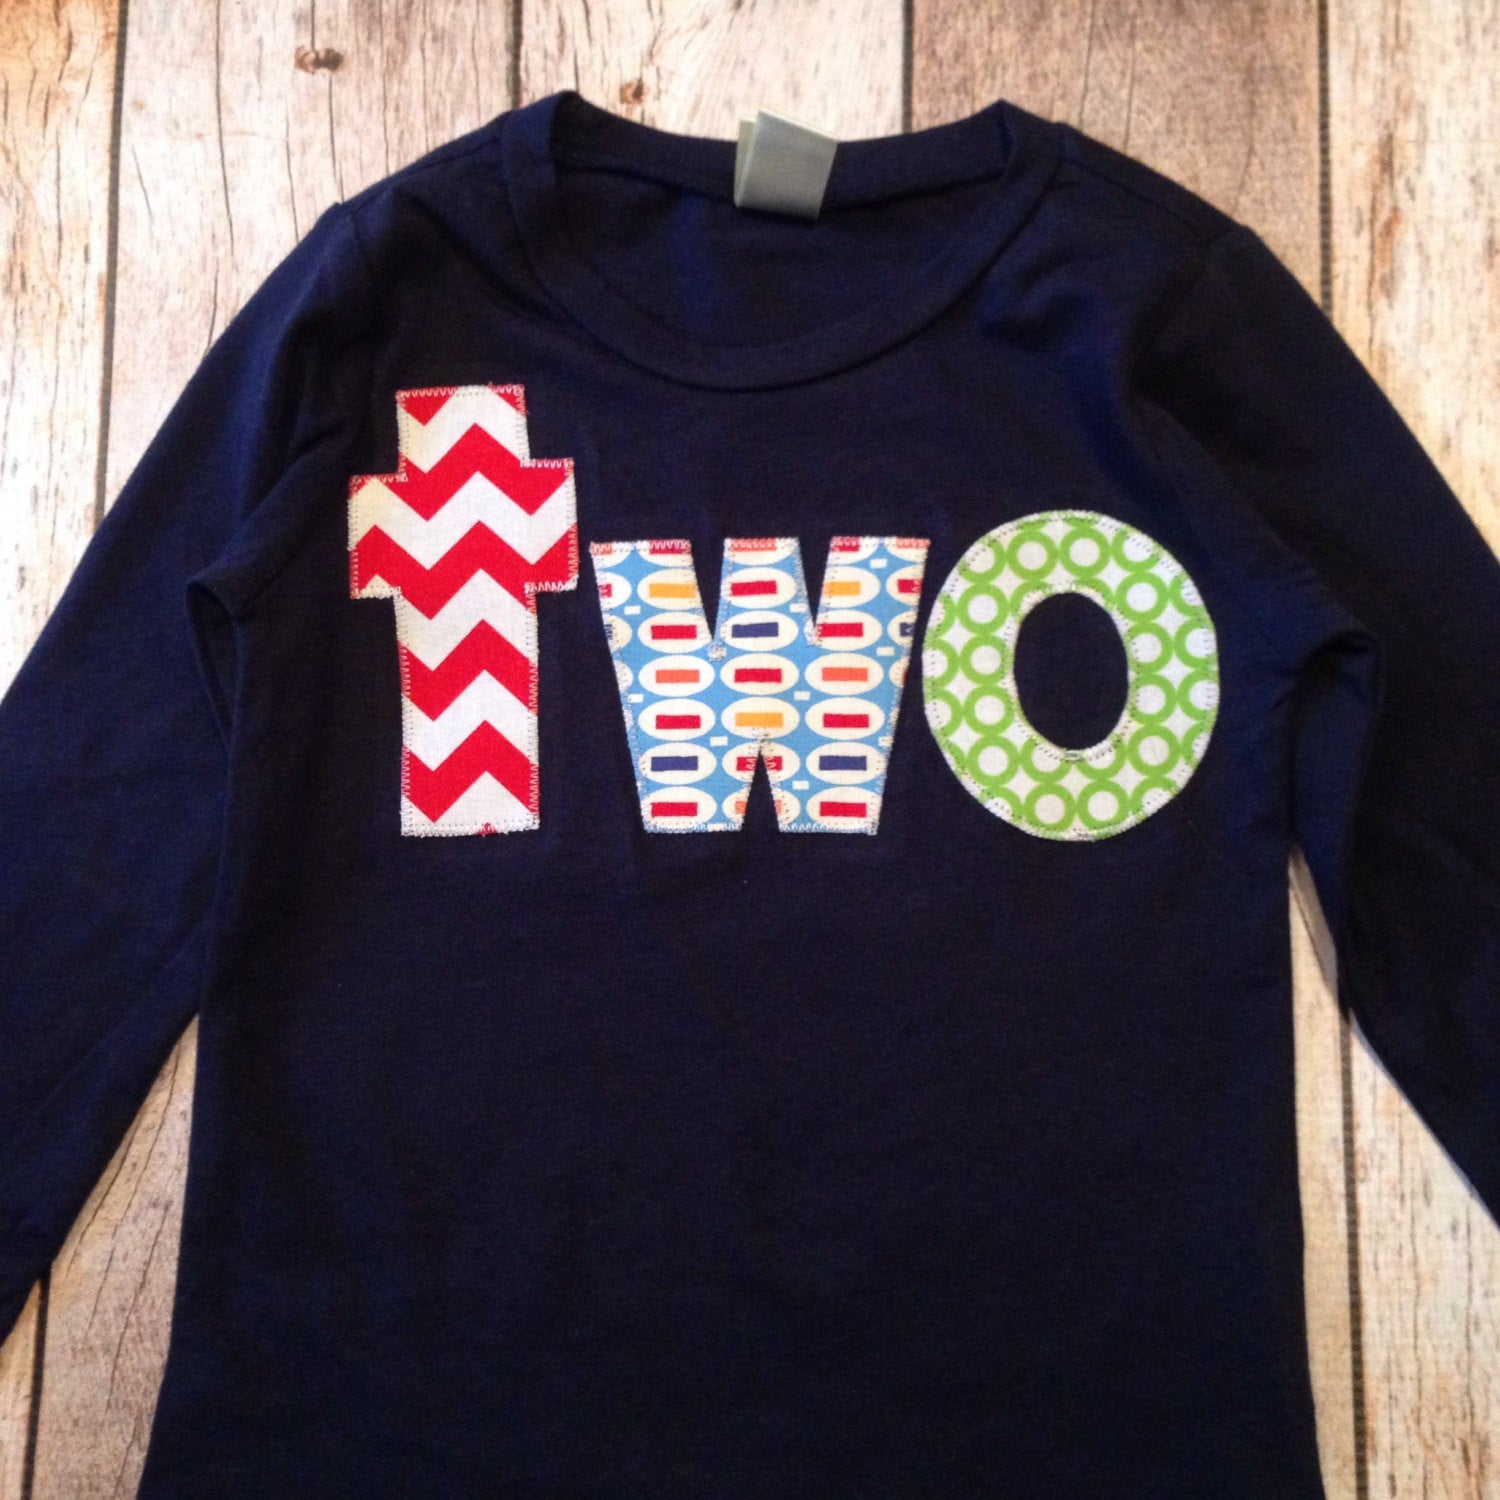 2 year old birthday shirt boys two Long Sleeve Birthday Shirt navy red chevron blue pez green circle 2 year old birthday tshirt 2nd birthday